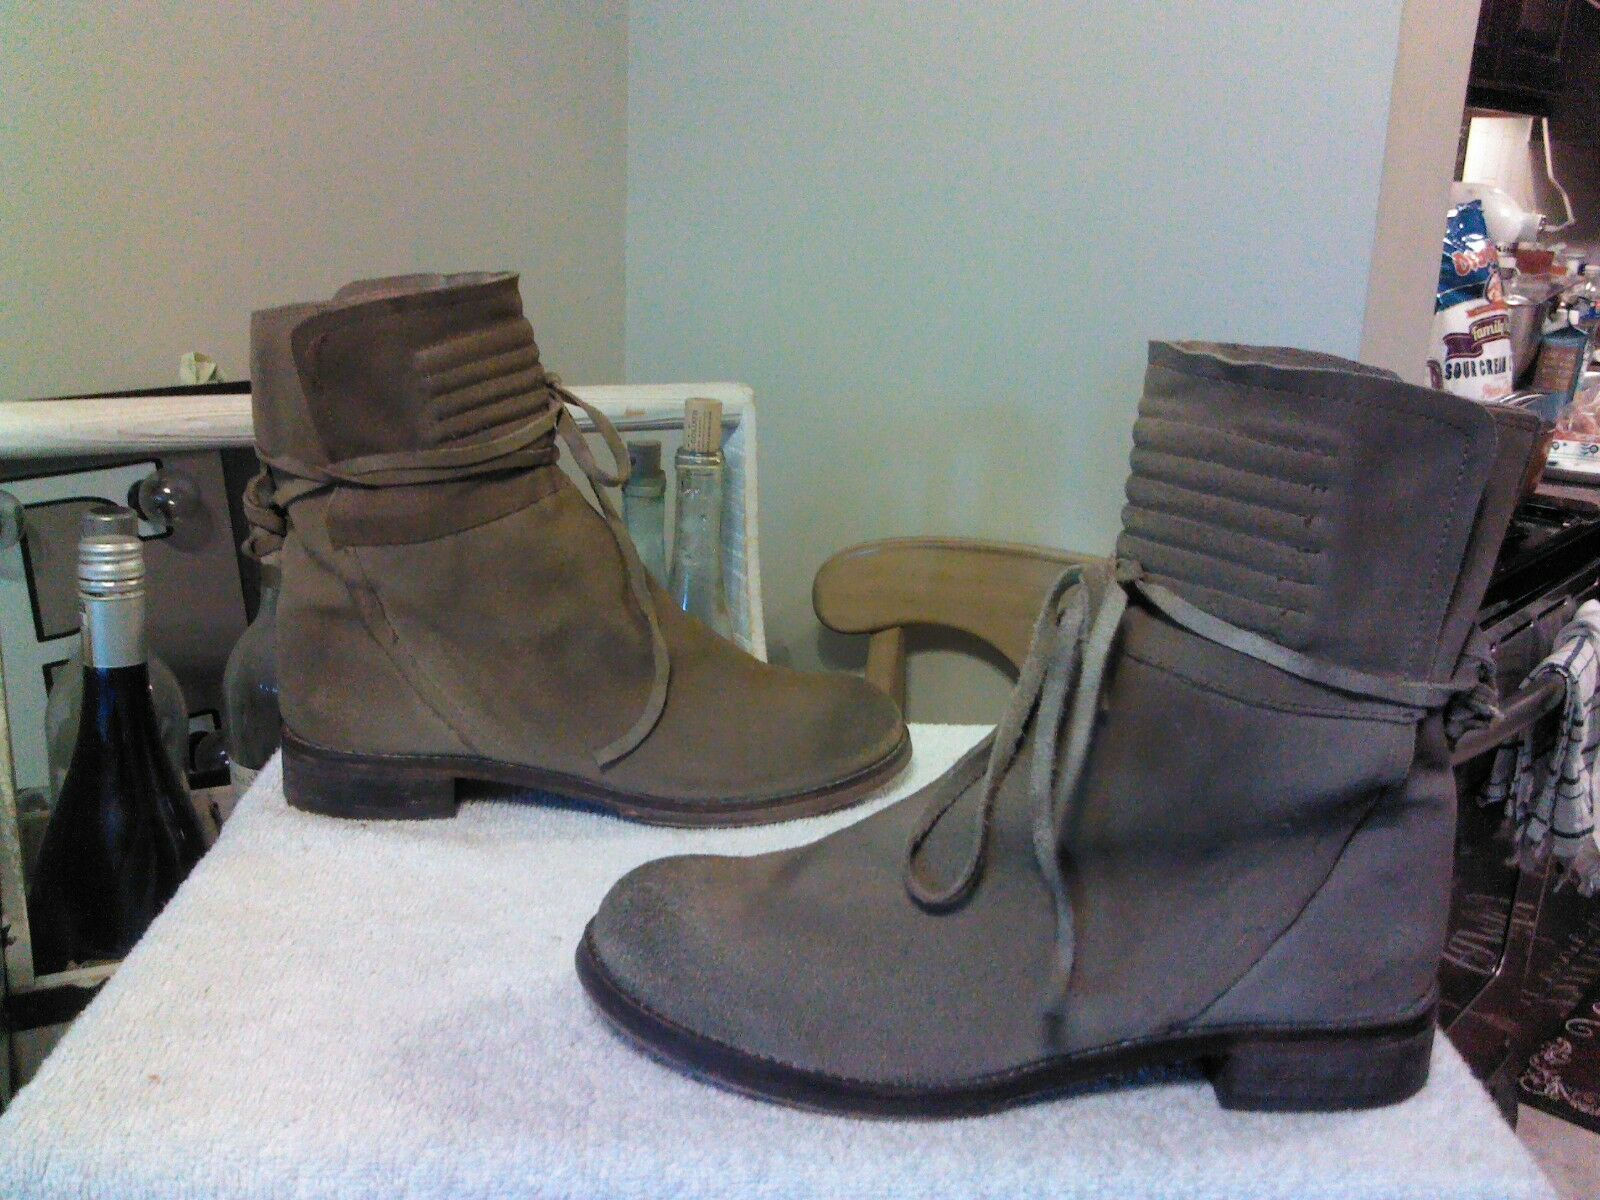 Free People Cambridge Womens Boots EU 37 US US US 7 Distressed Tan Suede Booties 2208 499563